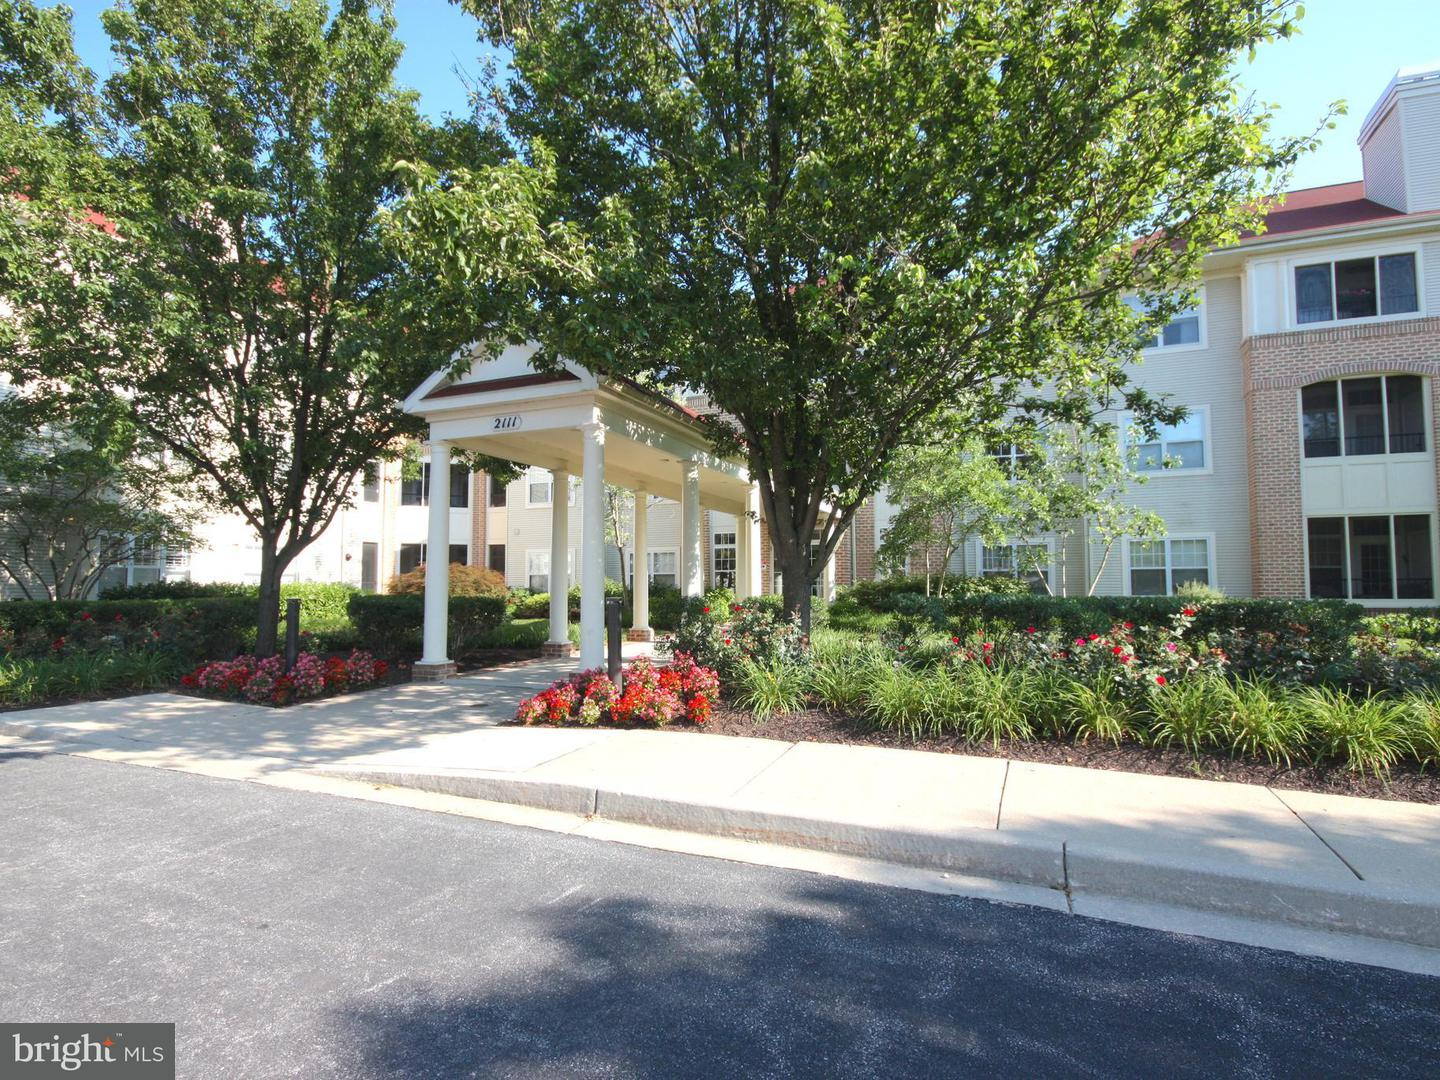 Other Residential for Rent at 2111 Ganton Grn #e212 Woodstock, Maryland 21163 United States